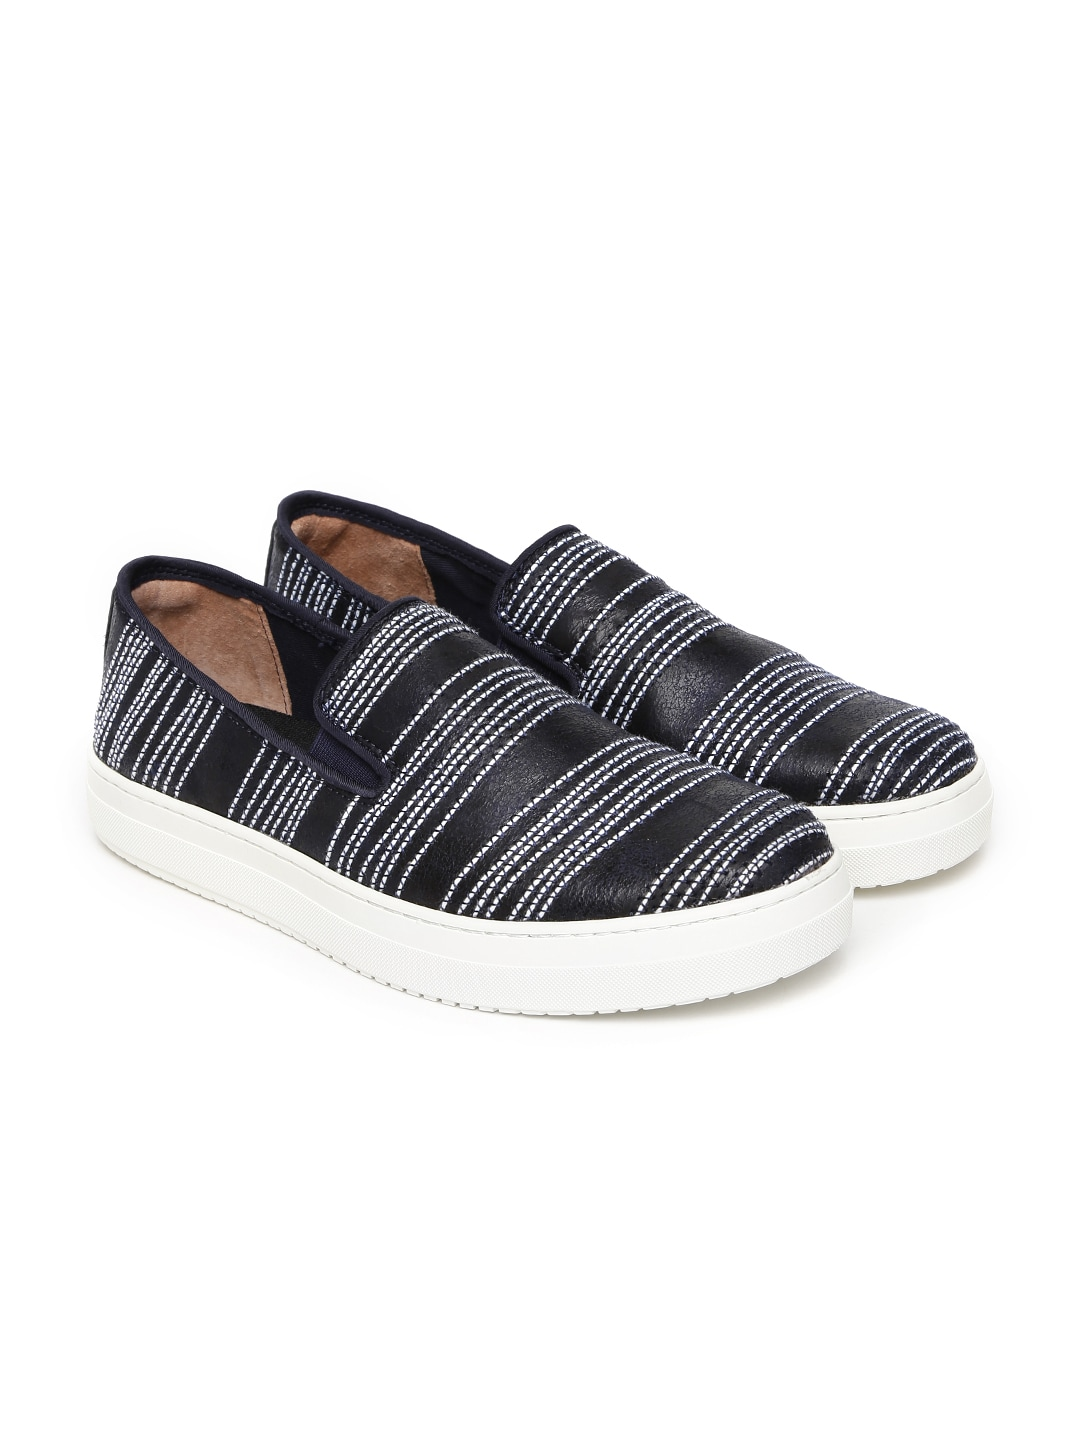 c185ae0c7f Casual Shoes For Men - Buy Casual   Flat Shoes For Men